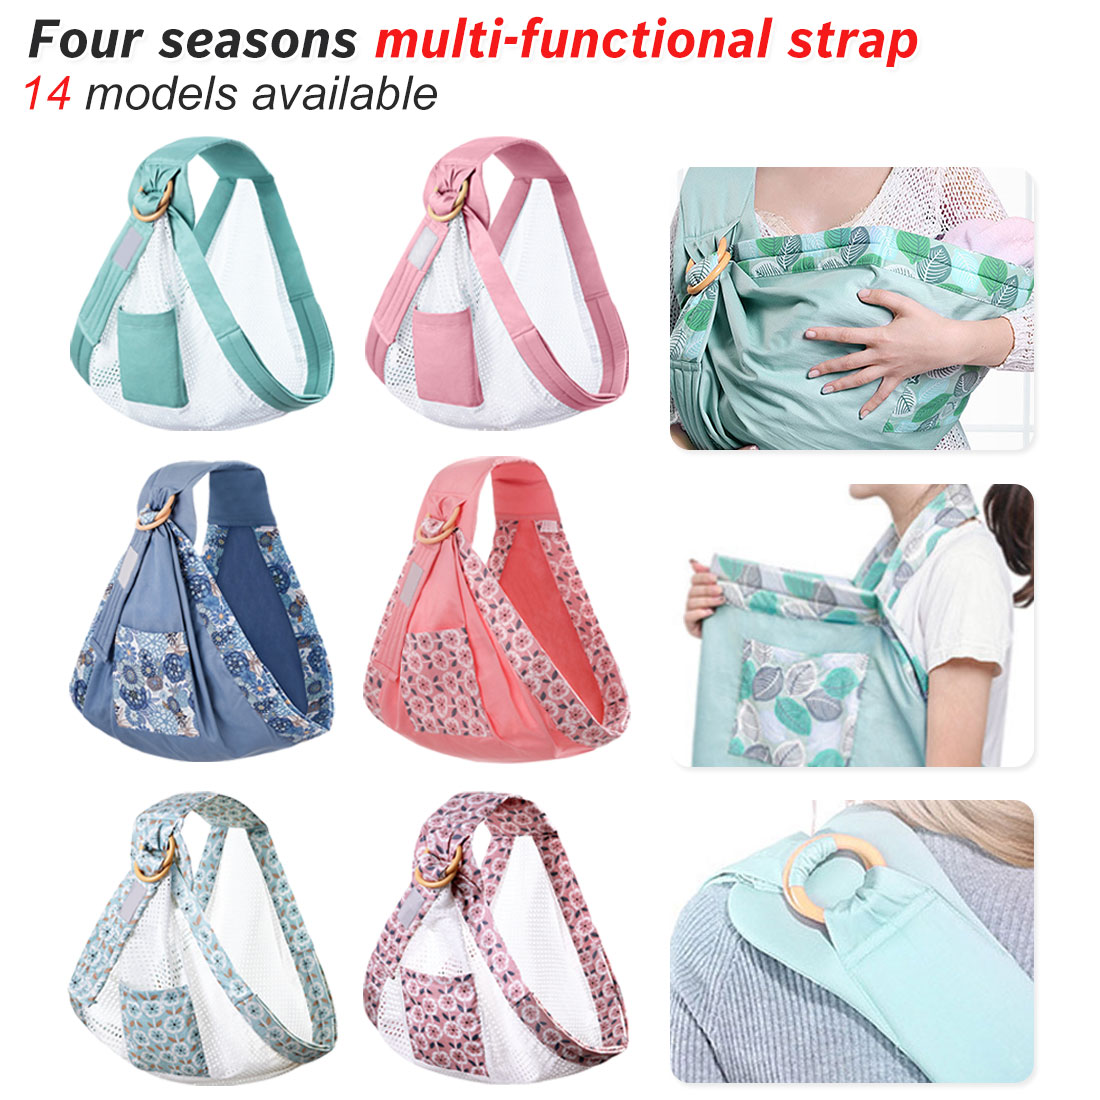 Portable Baby Wrap Carrier Newborn Sling Dual Use Infant Nursing Cover Carrier Mesh Fabric Breastfeeding Carriers Up To 130 Lbs